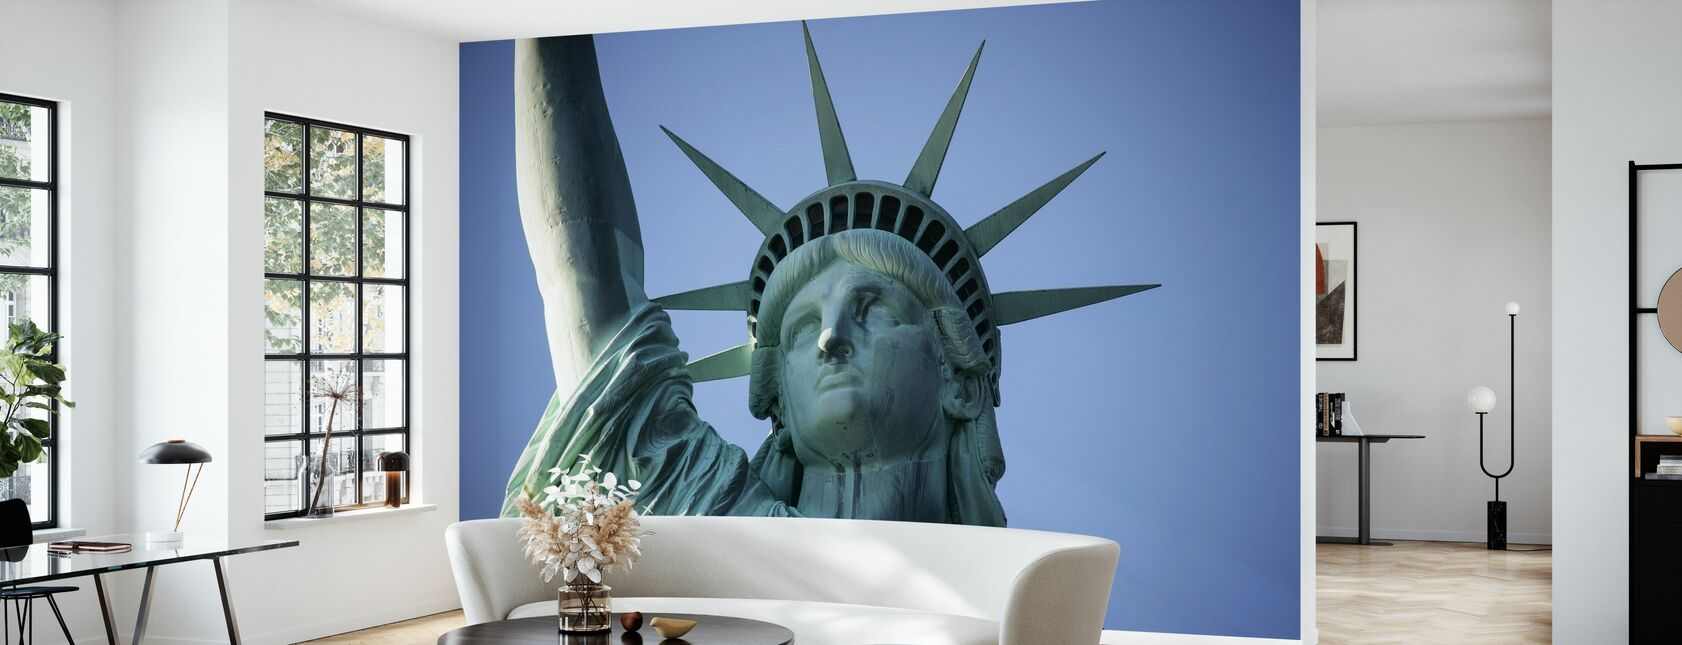 Statue of Liberty - Wallpaper - Living Room